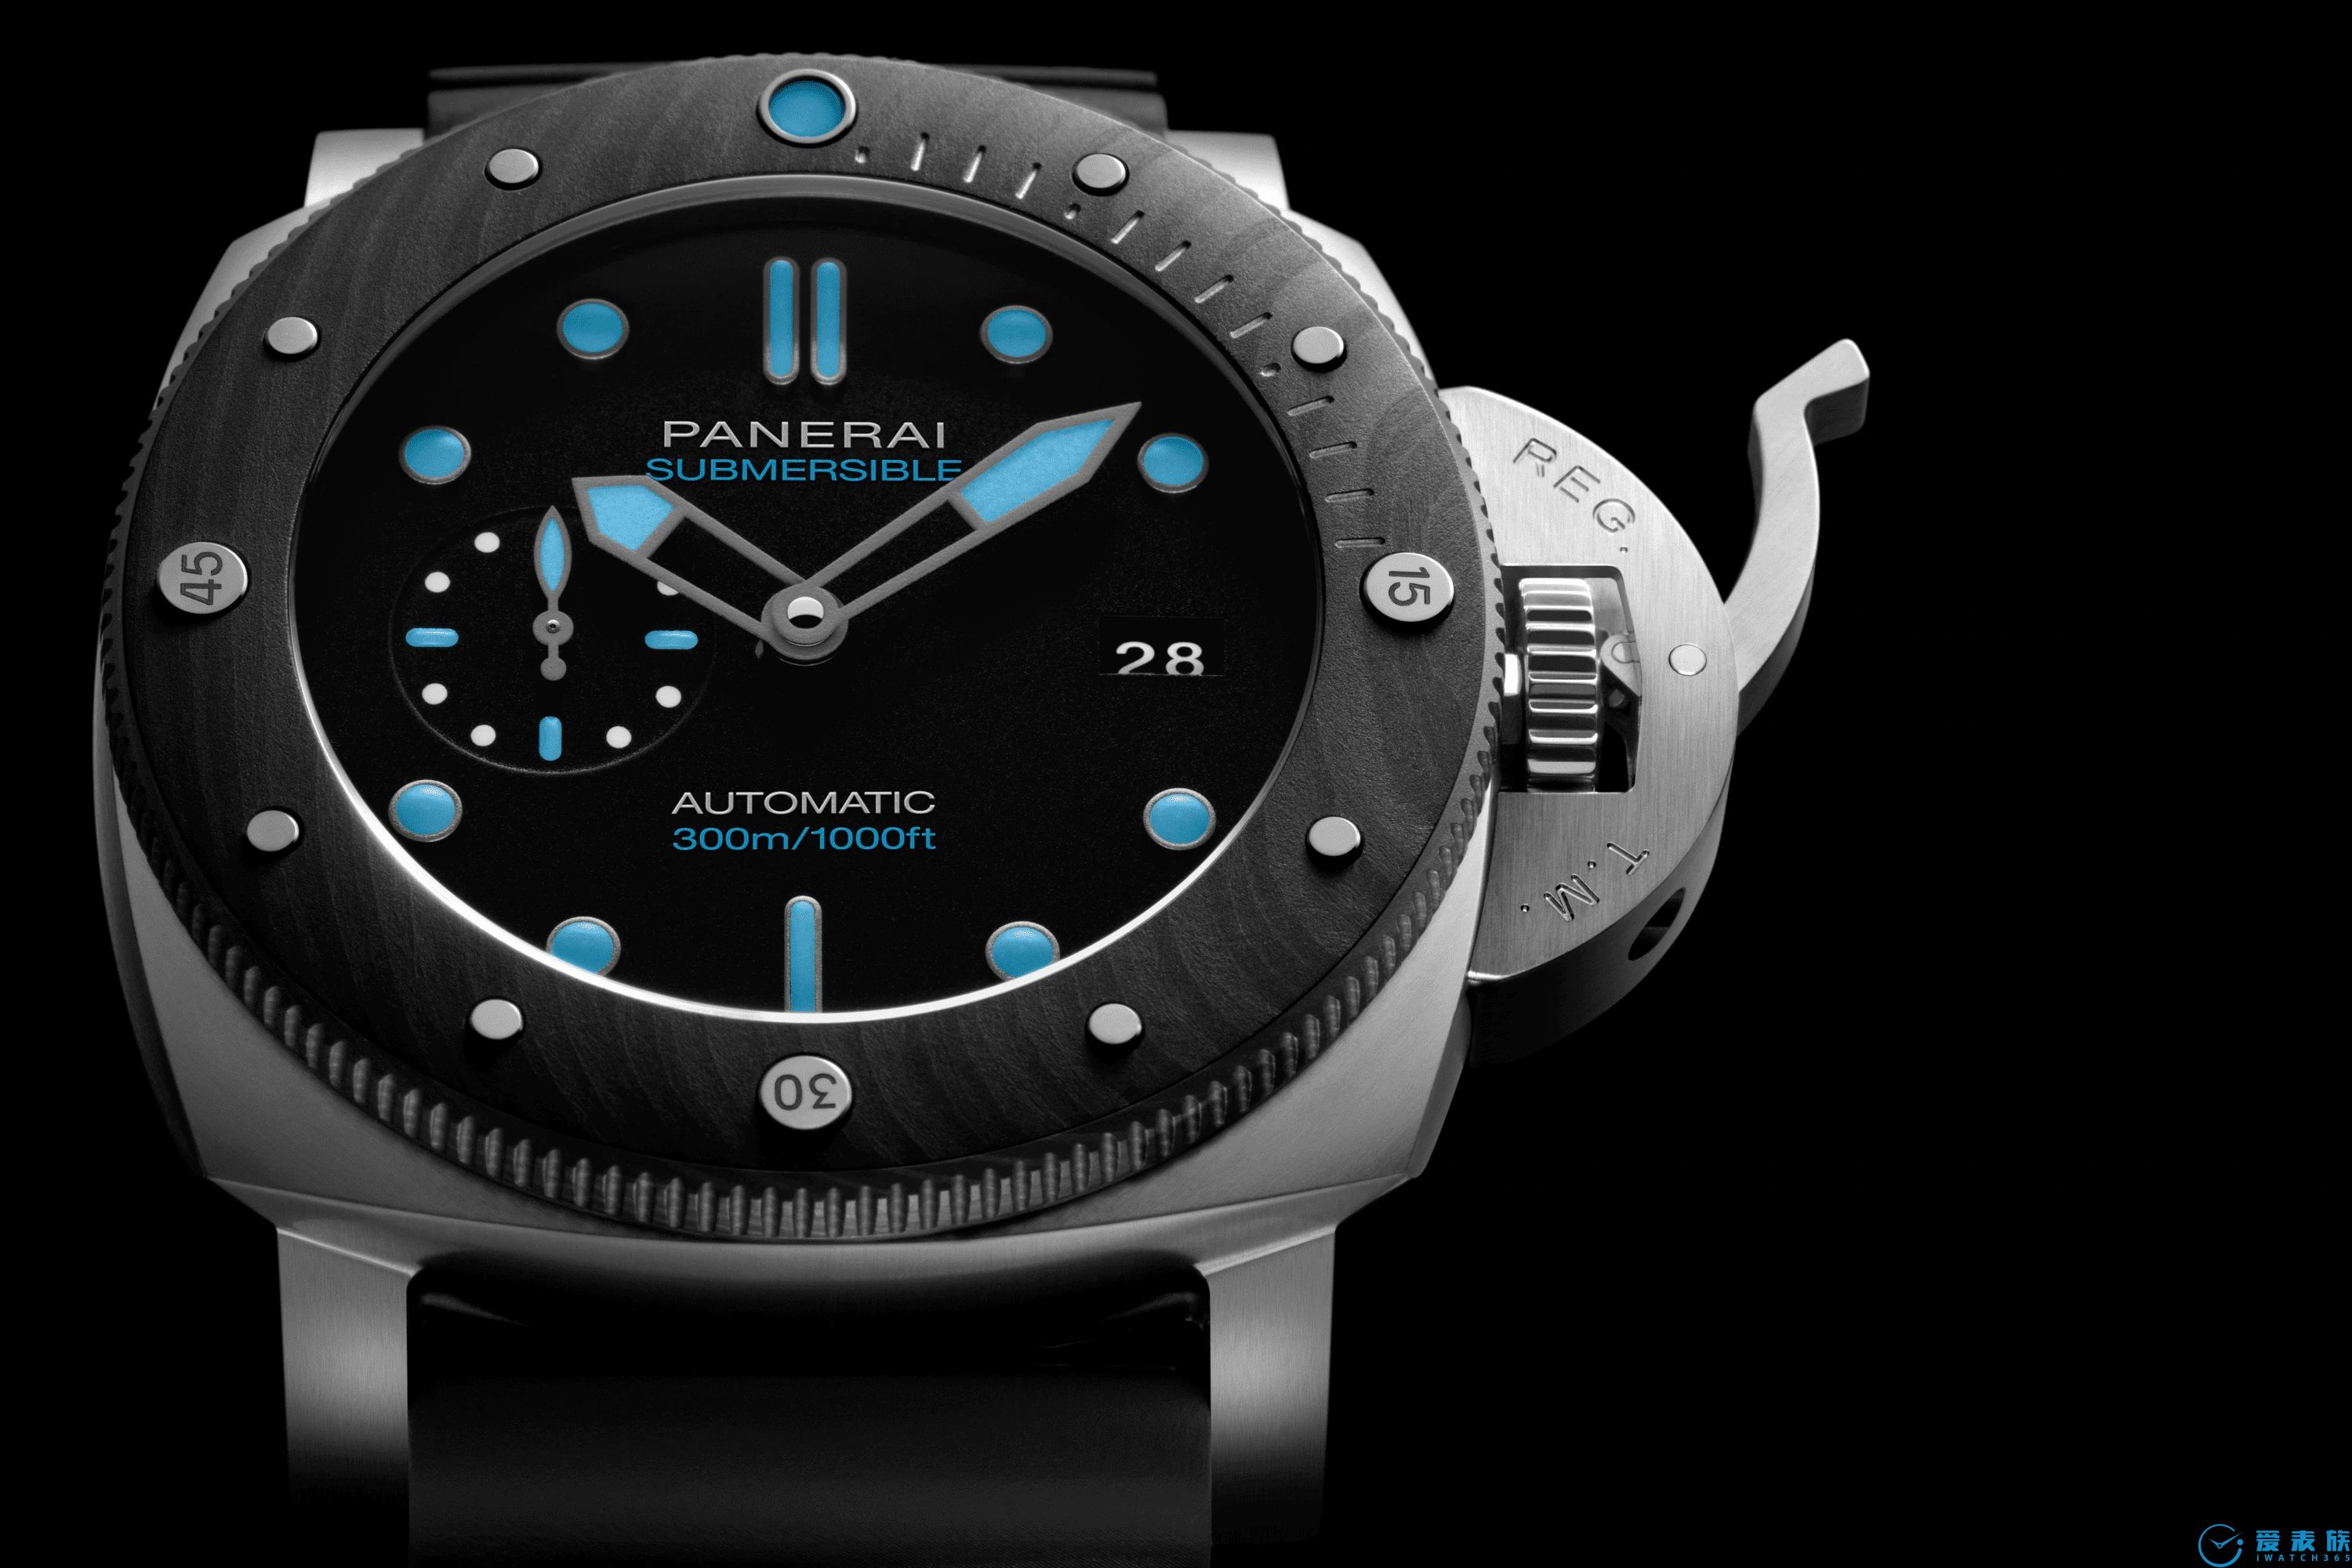 沛納海Luminor Submersible PAM00799